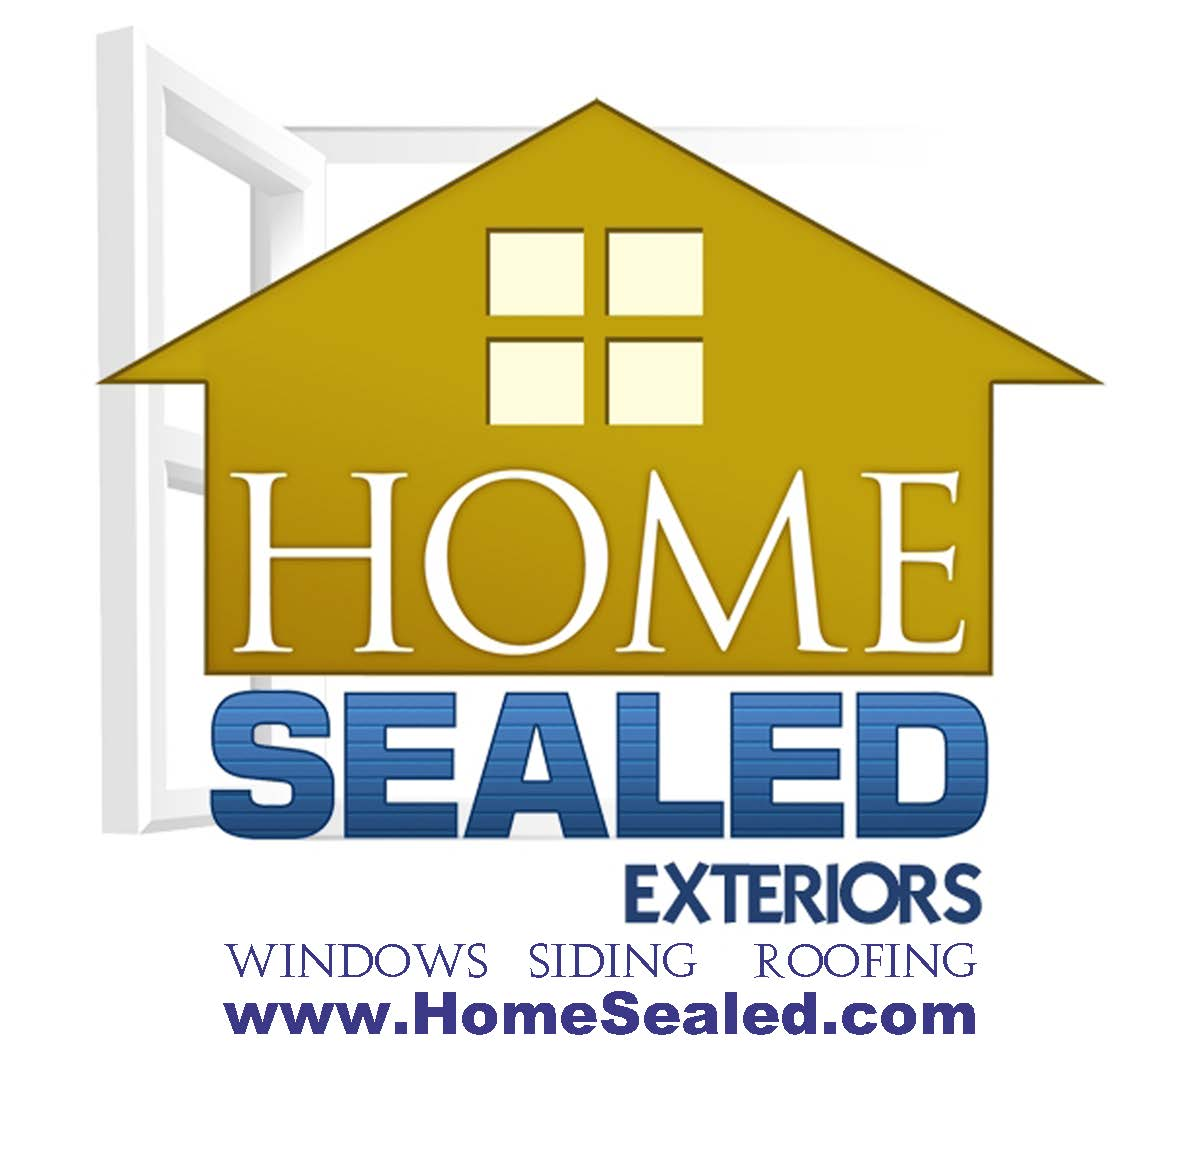 HomeSealed